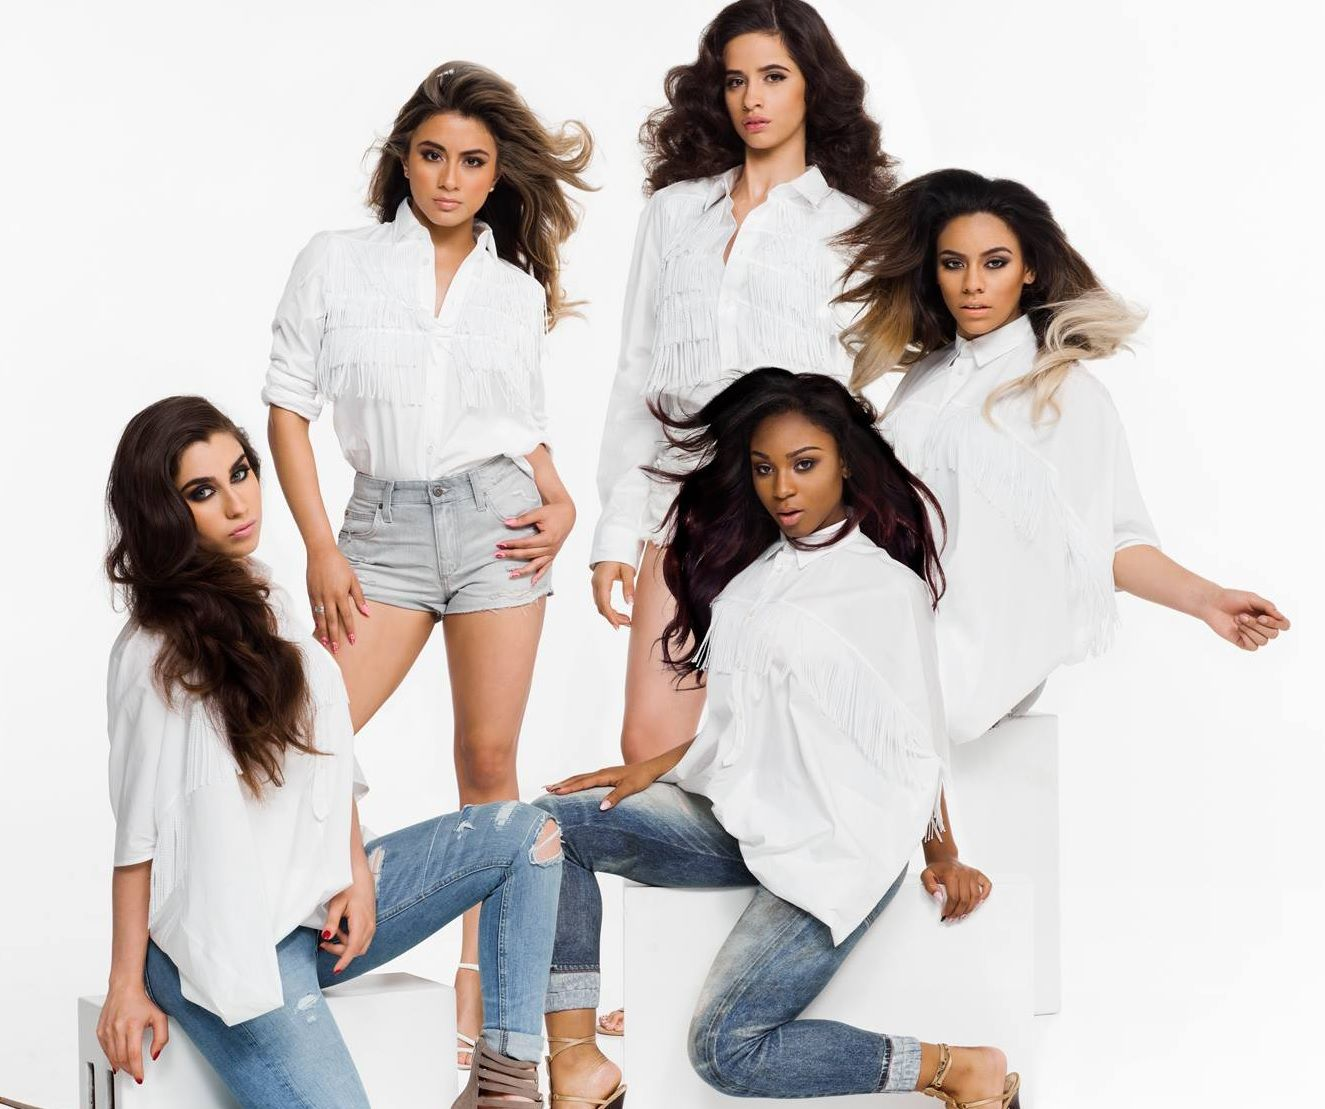 Sledgehammer Fifth Harmony Cover images